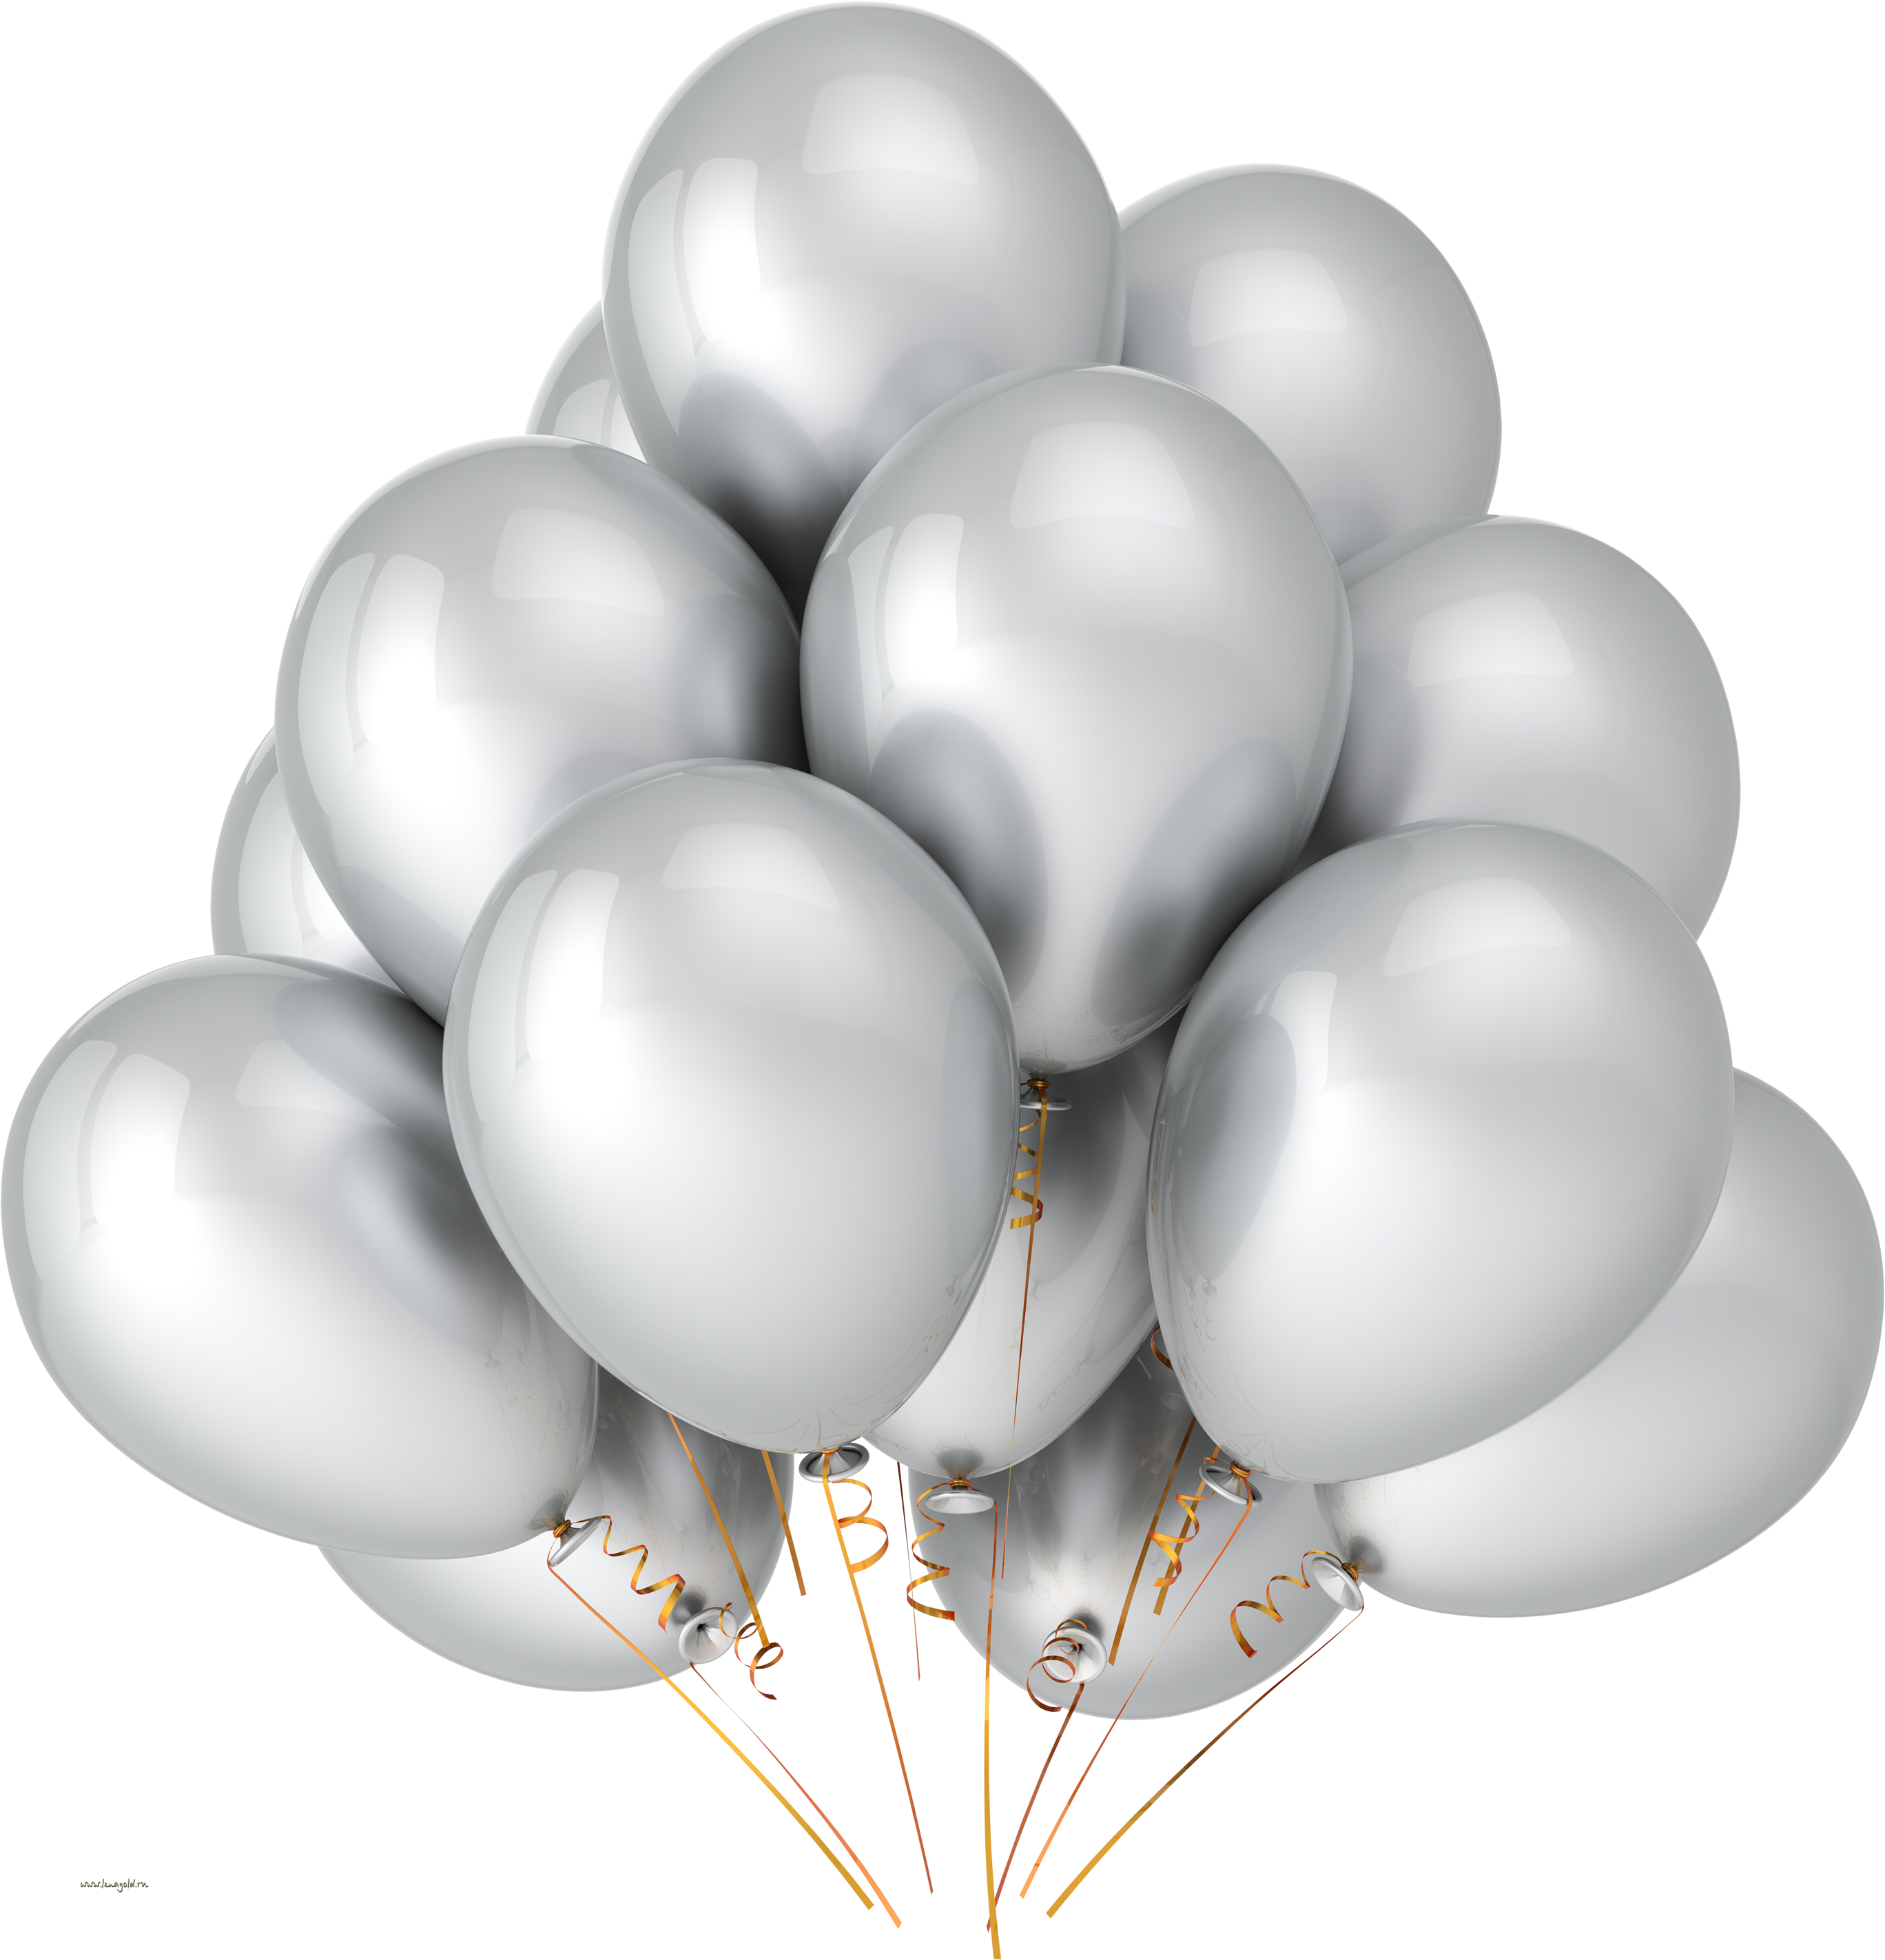 Png Format Images Of Balloon